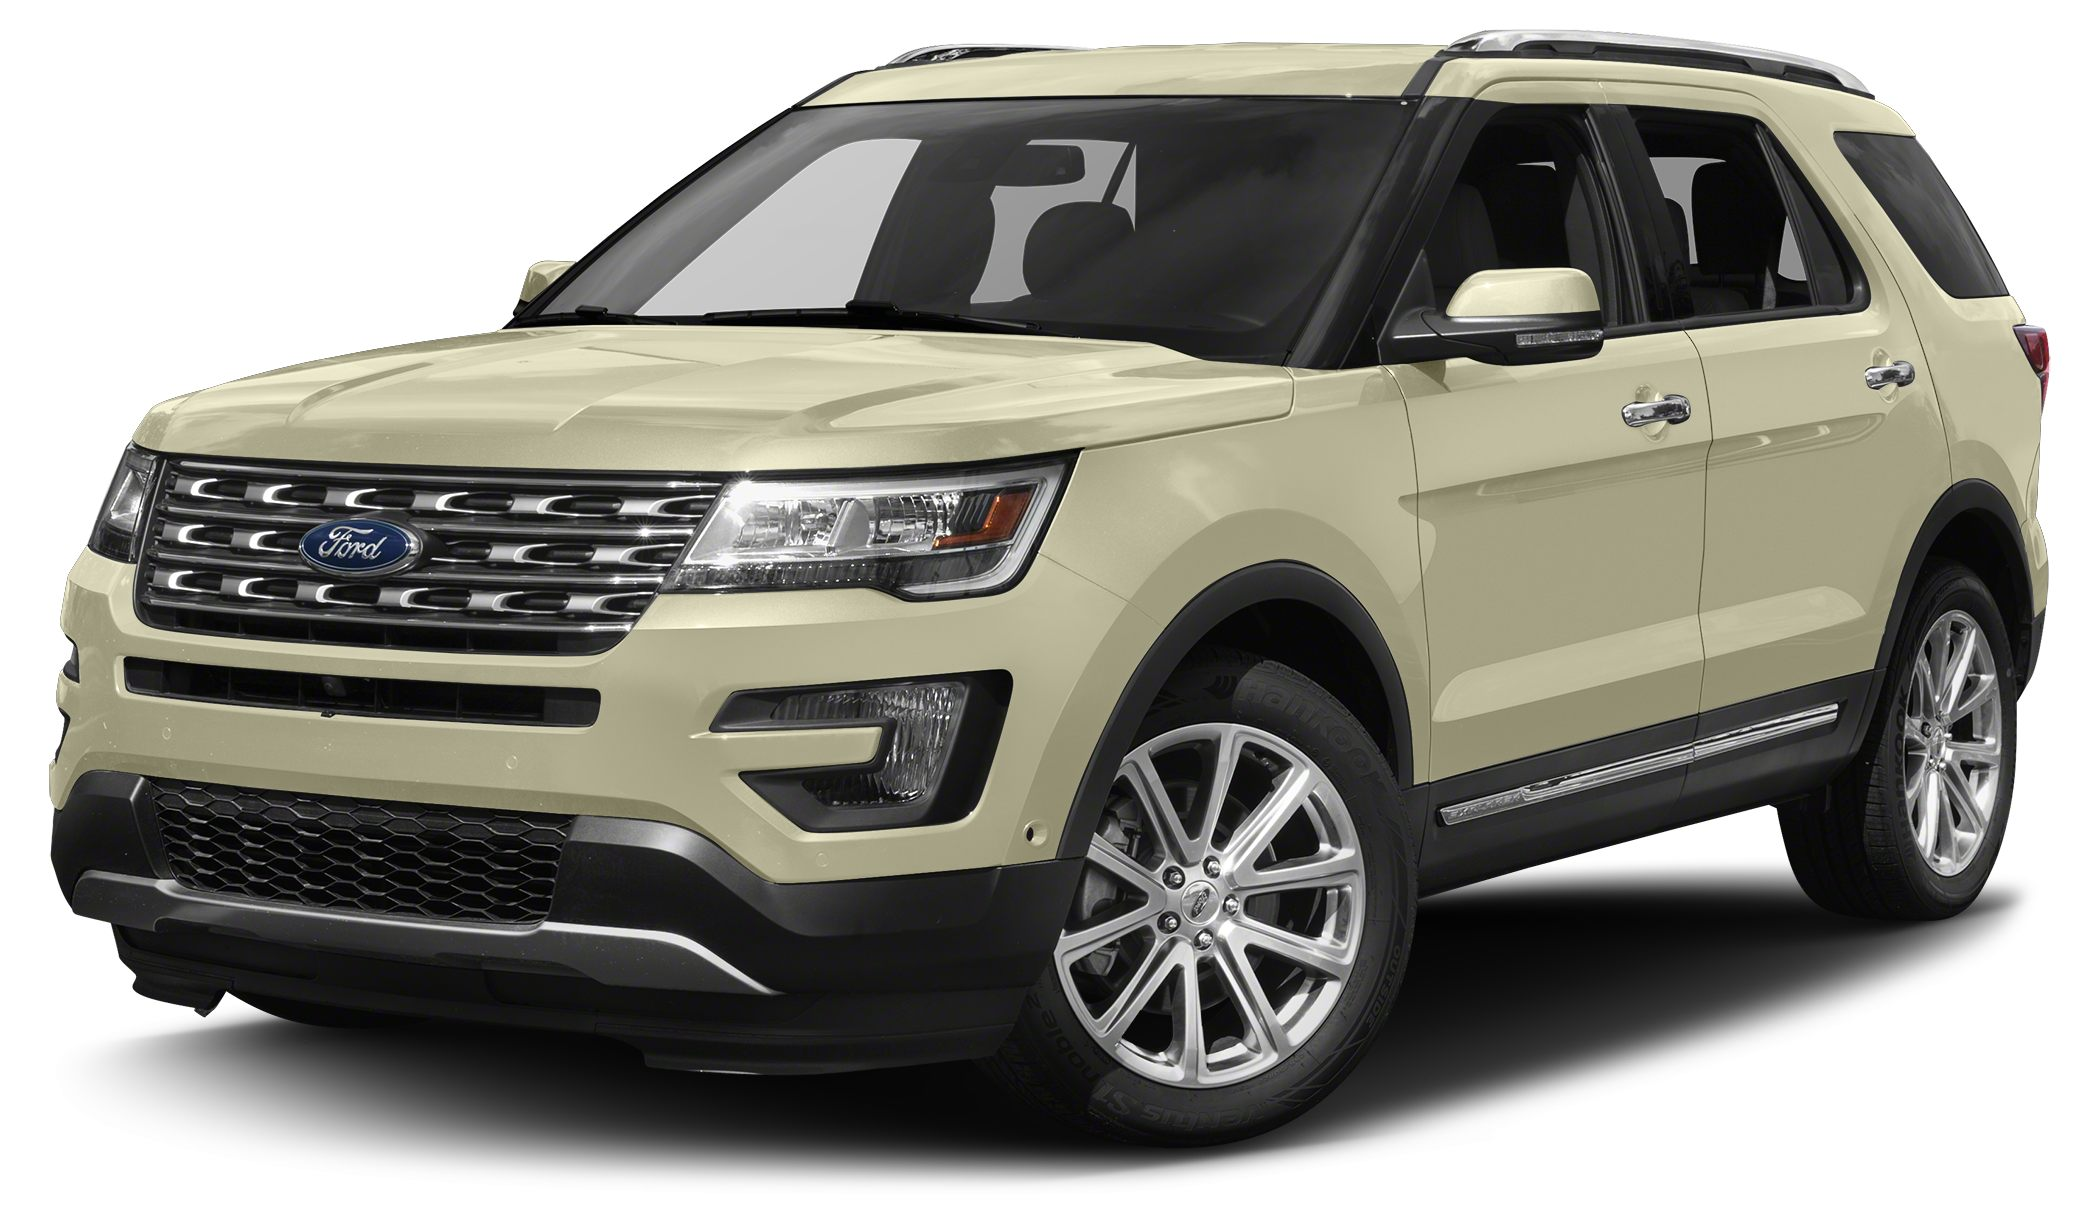 2017 Ford Explorer Limited 2017 Ford Explorer Limited Price includes 500 - Ford Credit Retail Bo